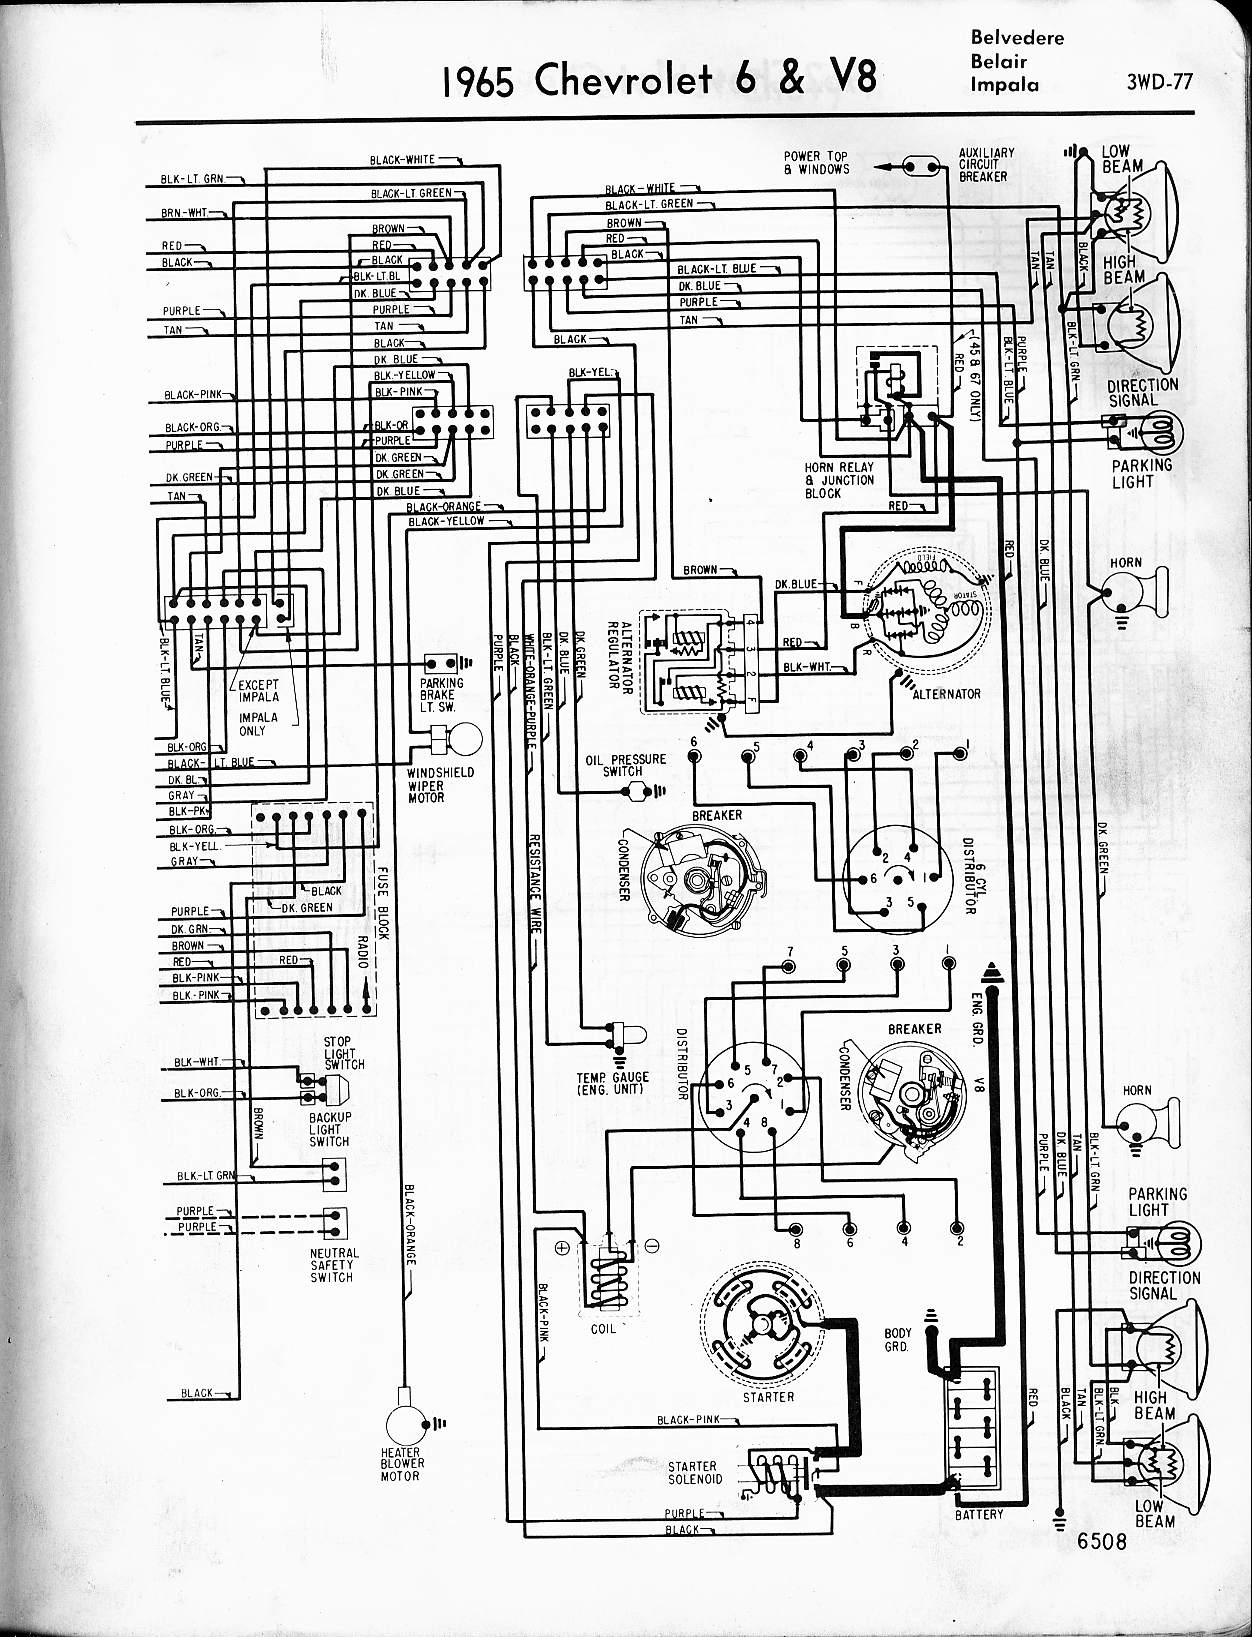 1964 Chevy C10 Headlight Wiring Diagram - Wiring Diagram Data